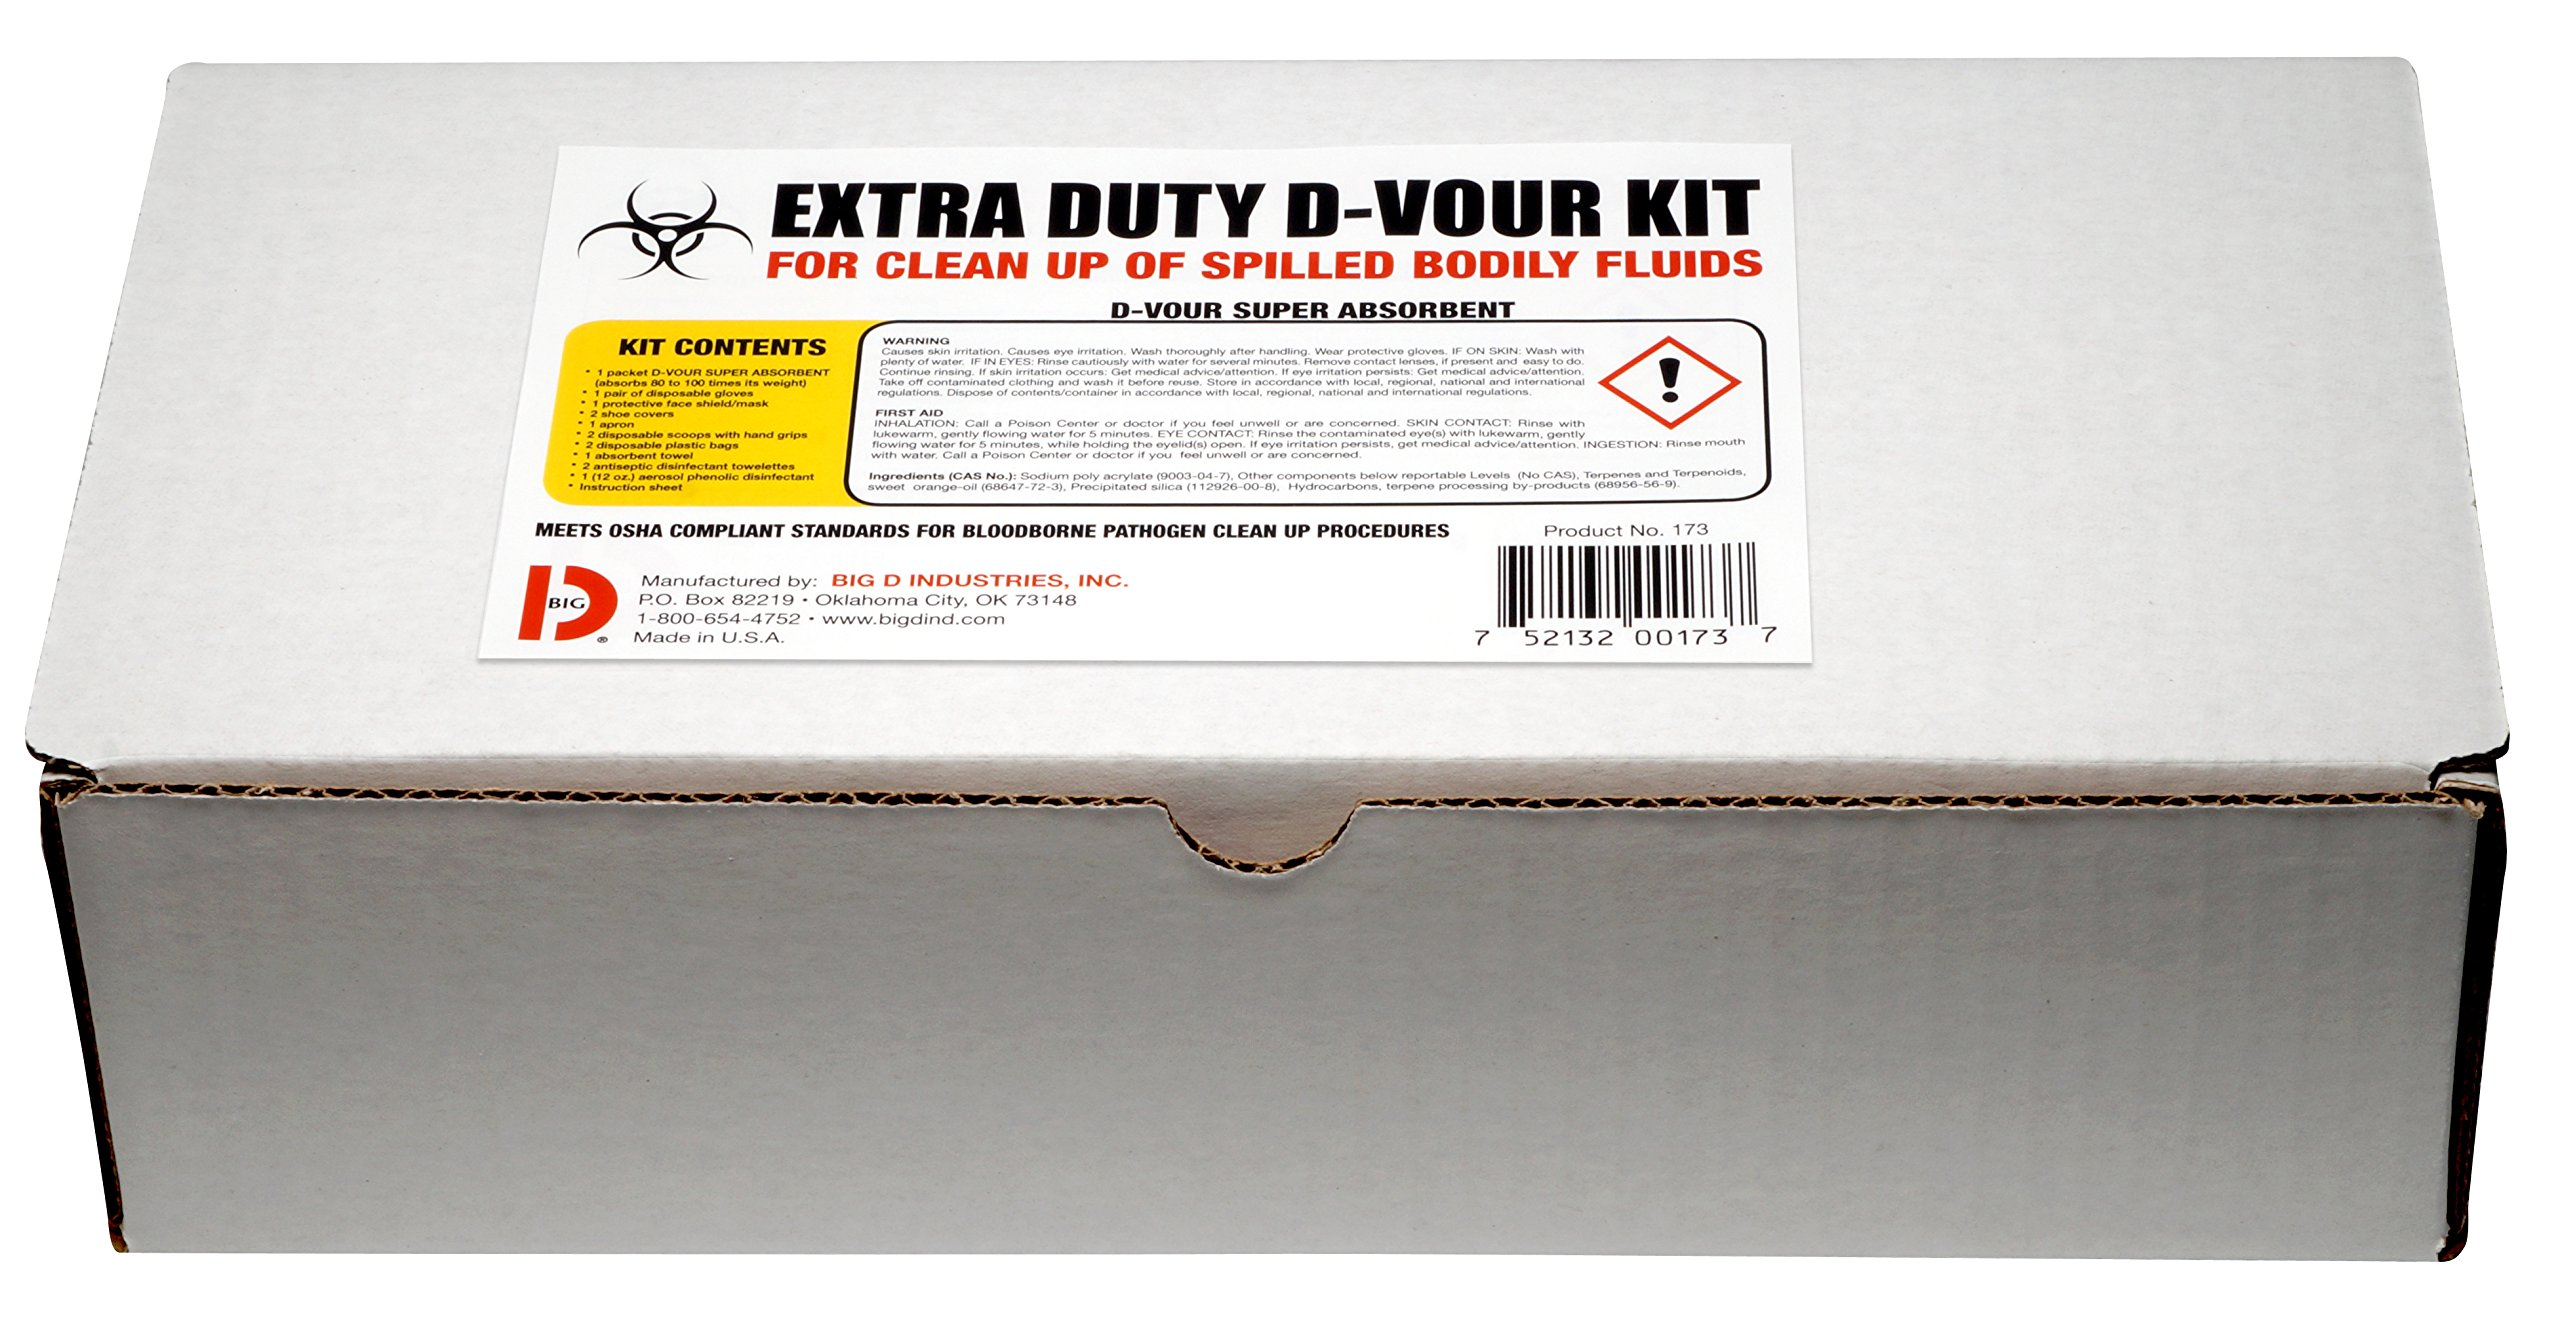 Big D 173 Extra Duty D-Vour Clean-Up Kit for Clean-Up and Disposal of Spilled Bodily Fluids (Pack of 6) - Ideal for use in schools, restaurants, health care facilities, grocery stores